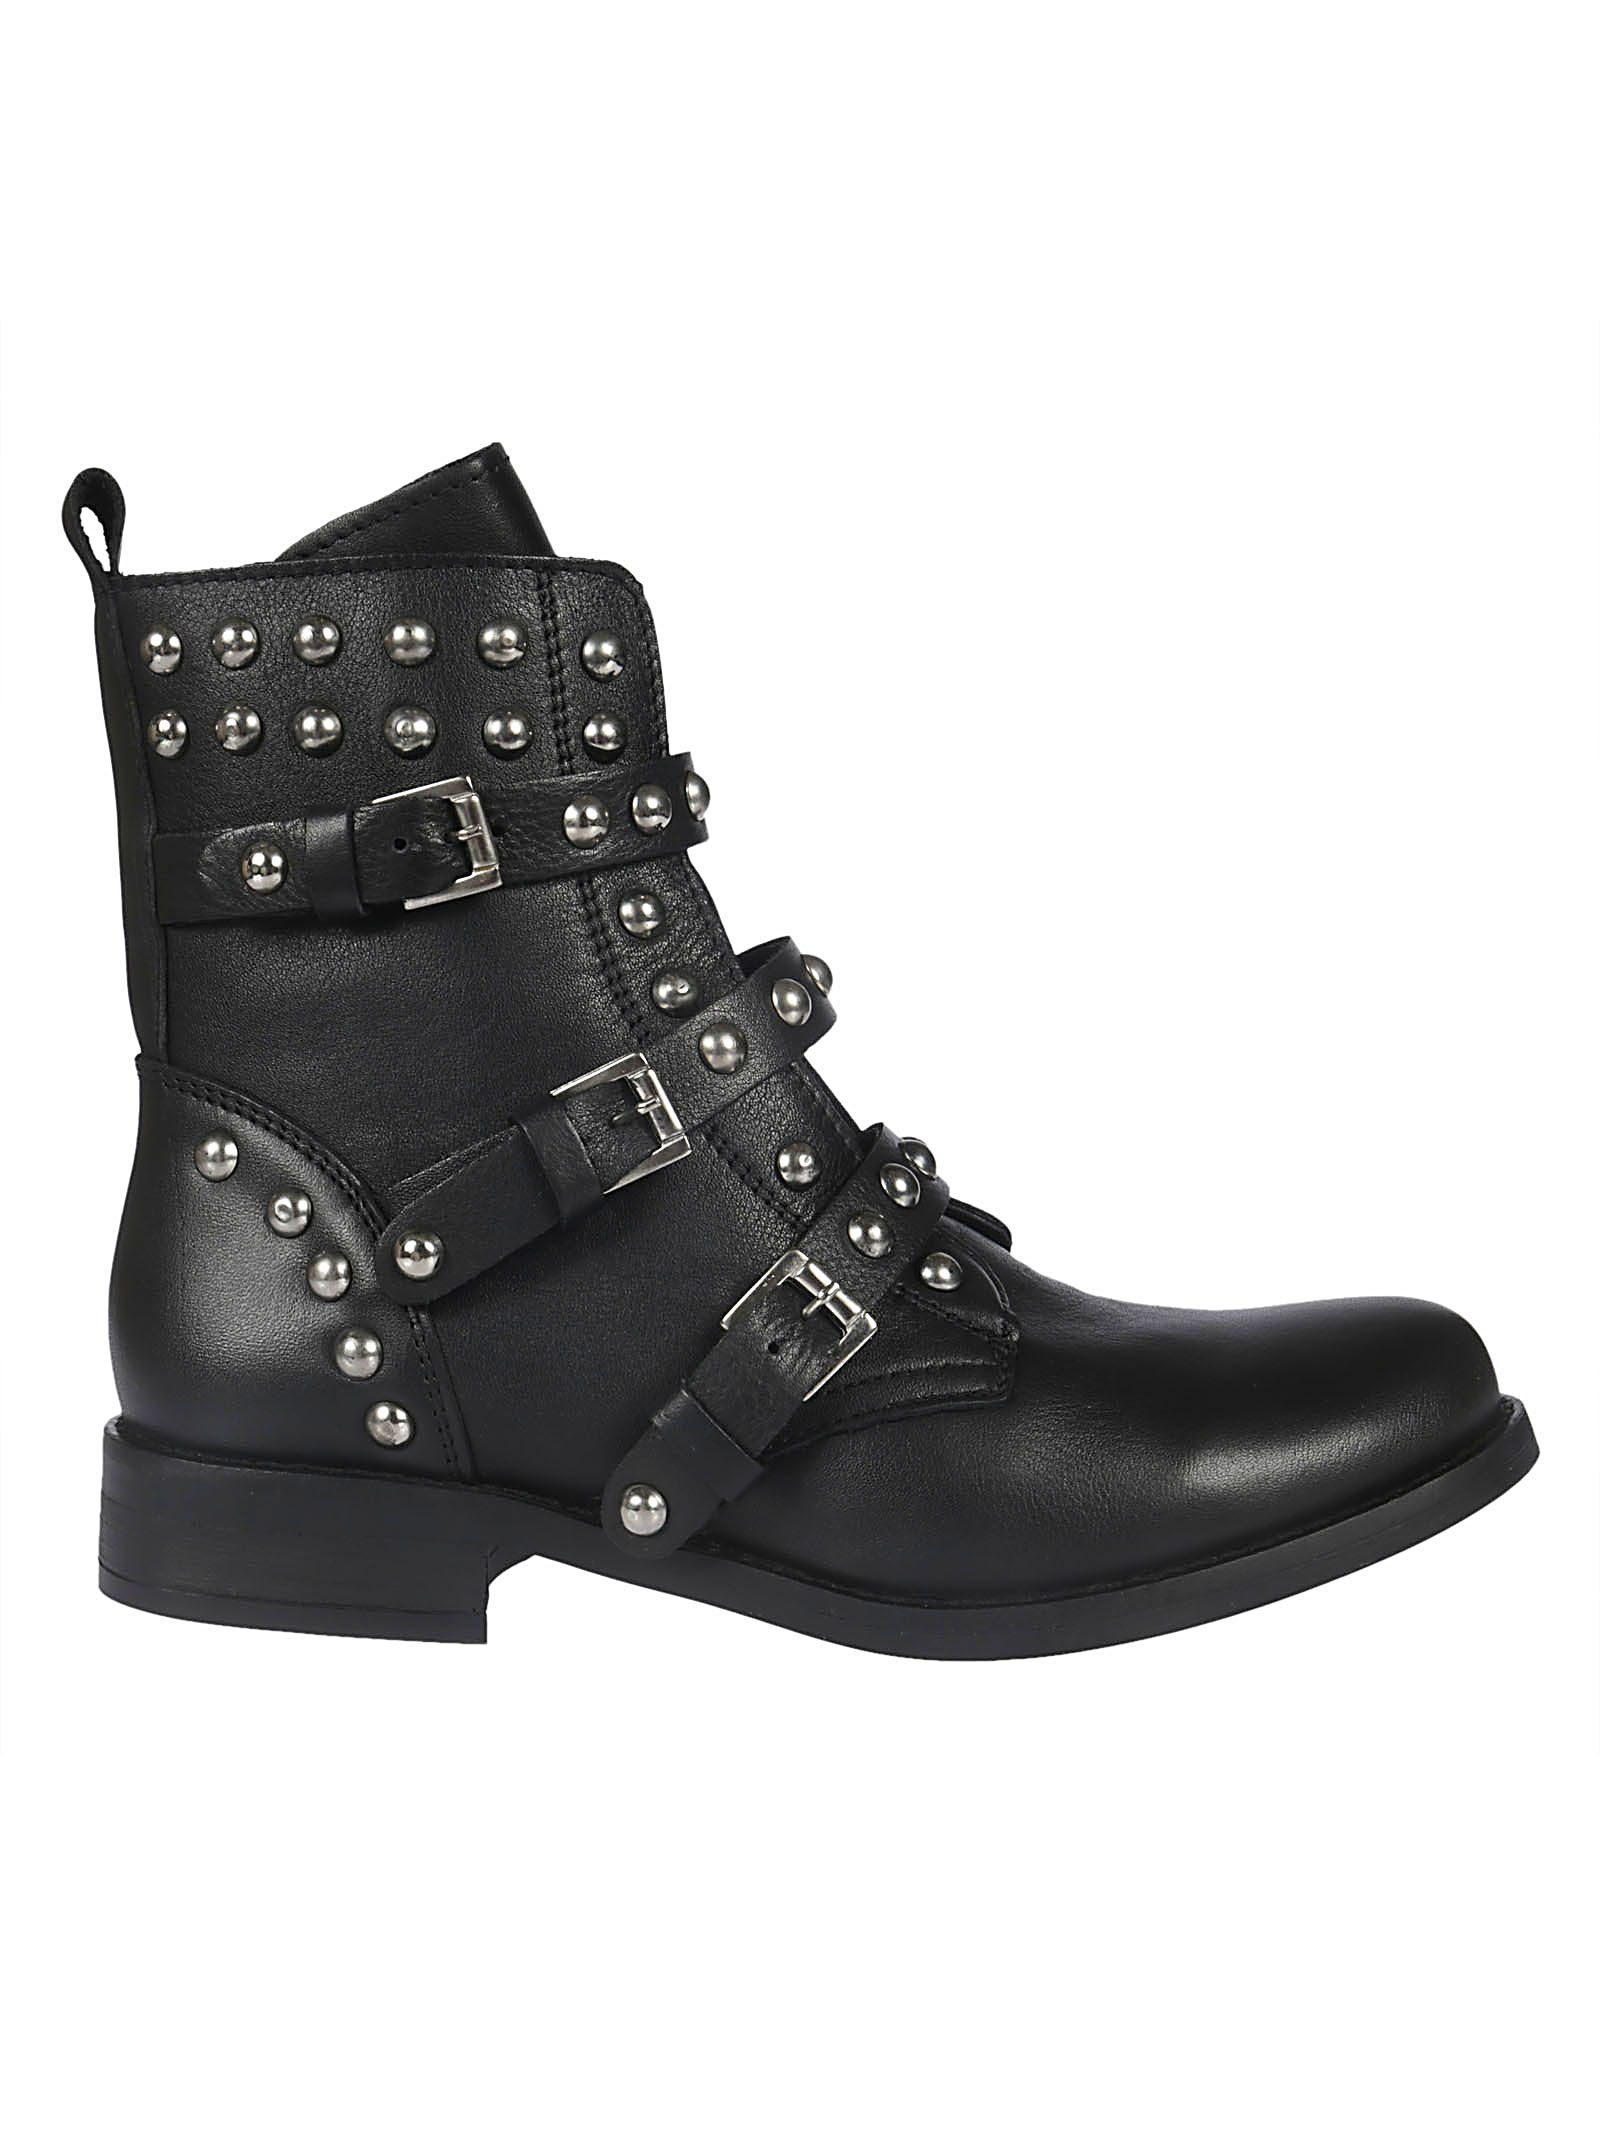 23bafa83198 Steve Madden Spunky Stud And Zip-Detail Leather Boots In Black-Leather